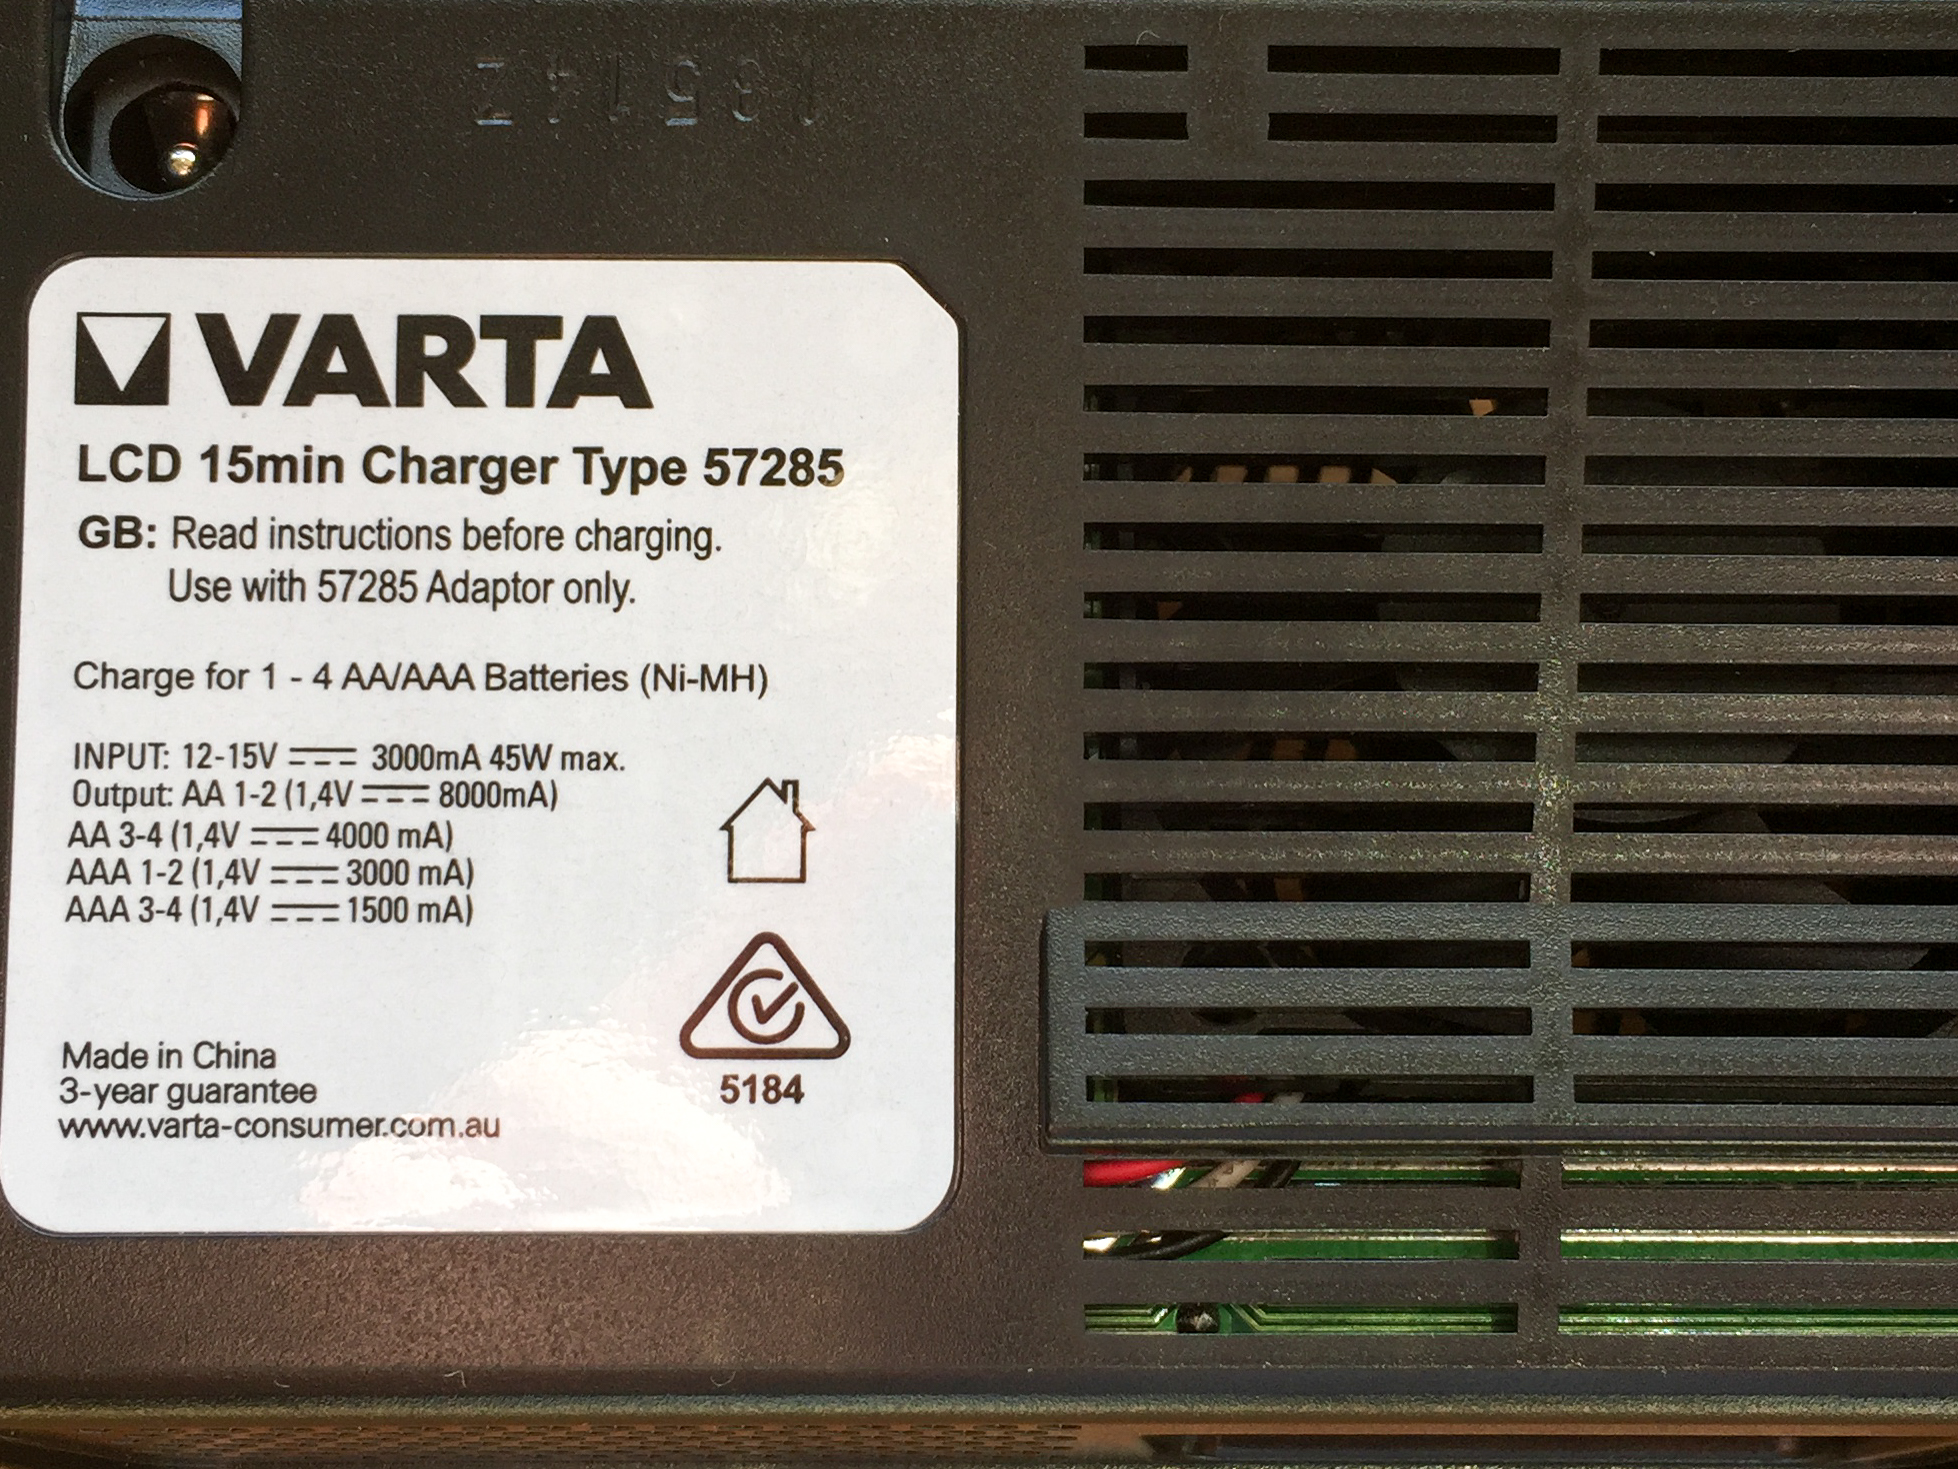 Varta 57285 Charger Specifications